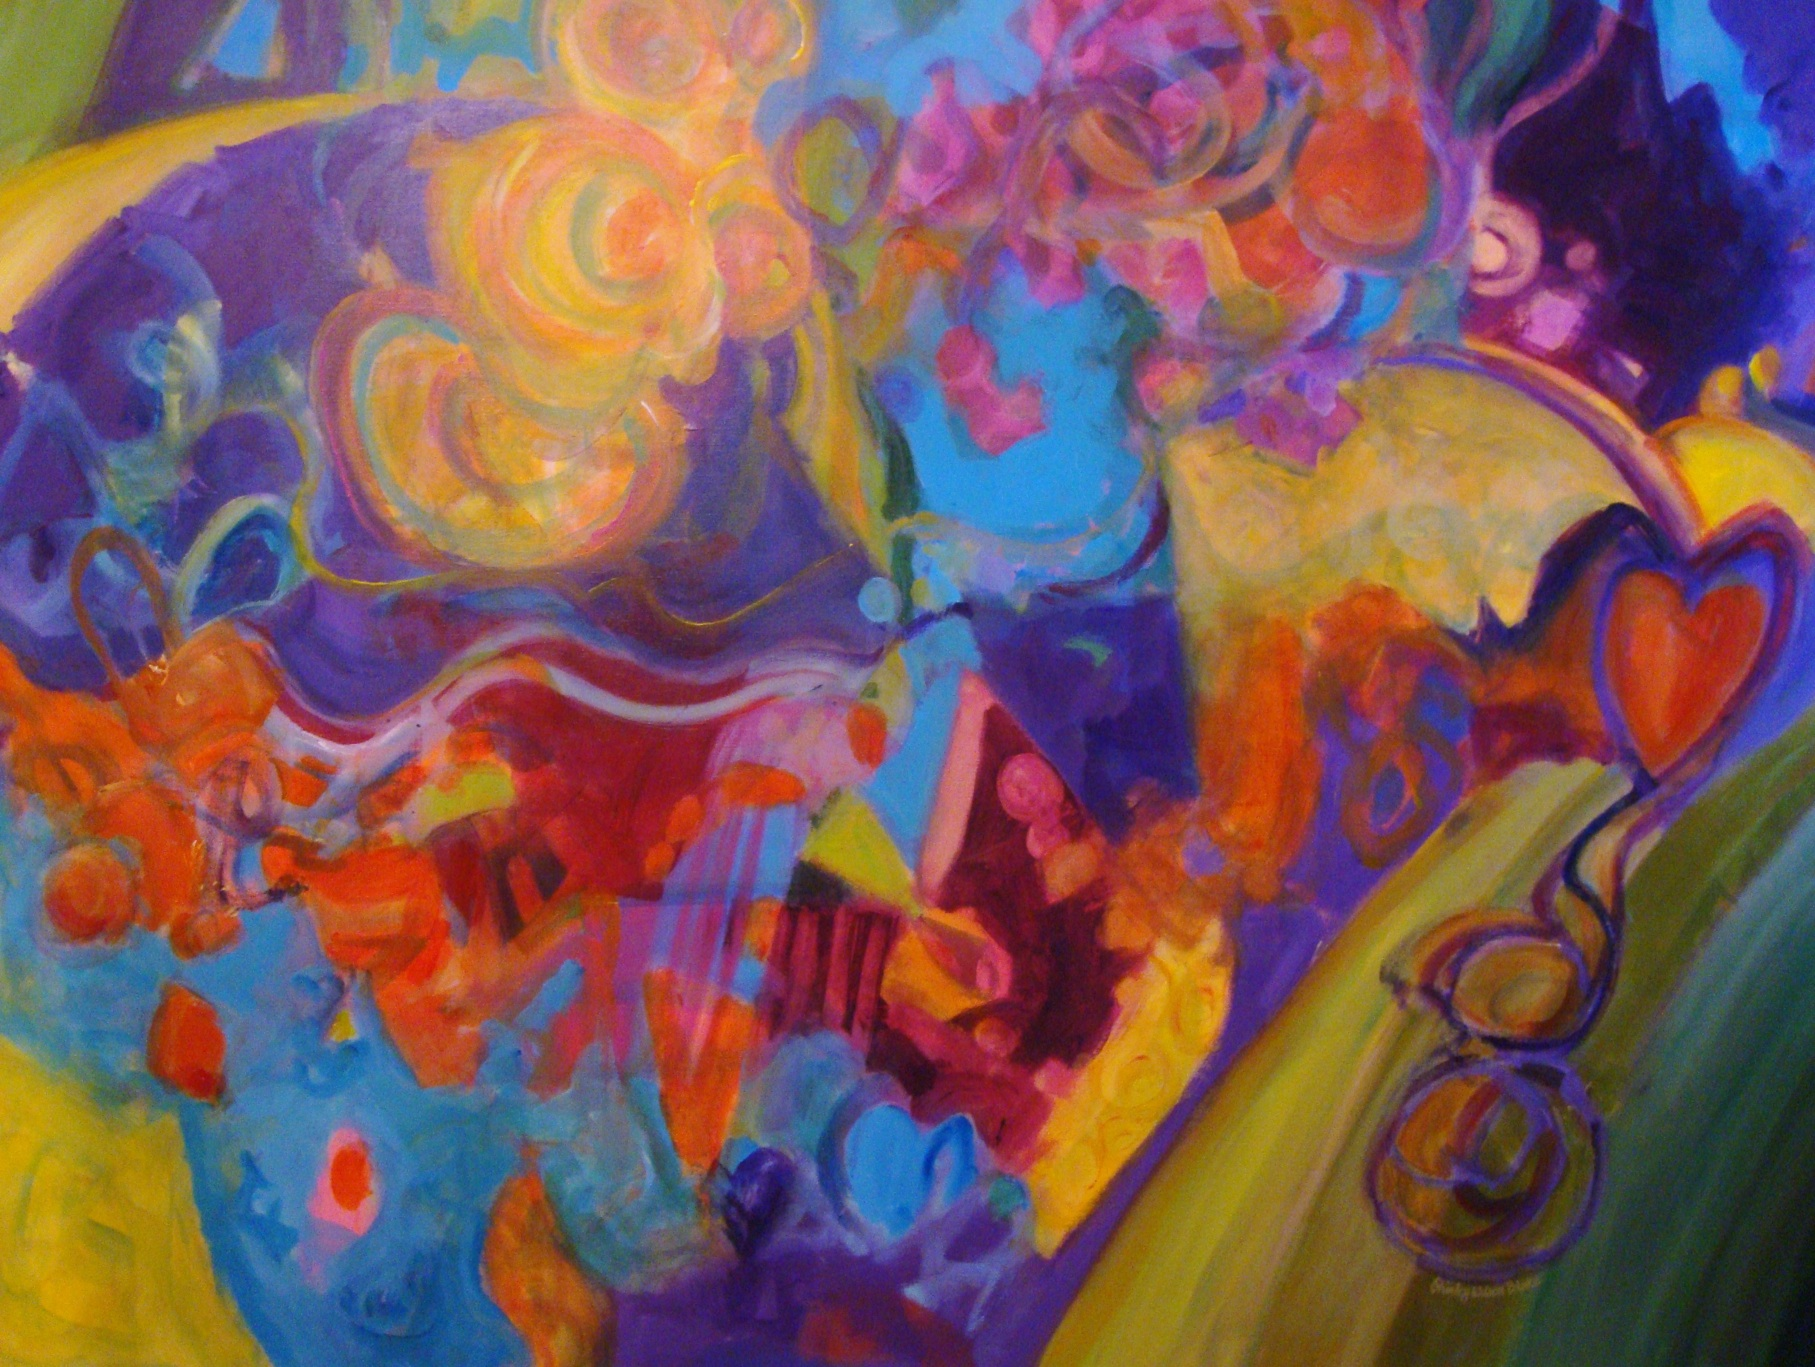 """It is a piece called """"My Heart Sings"""" and is an acrylic on canvas sized 36"""" x 48""""."""